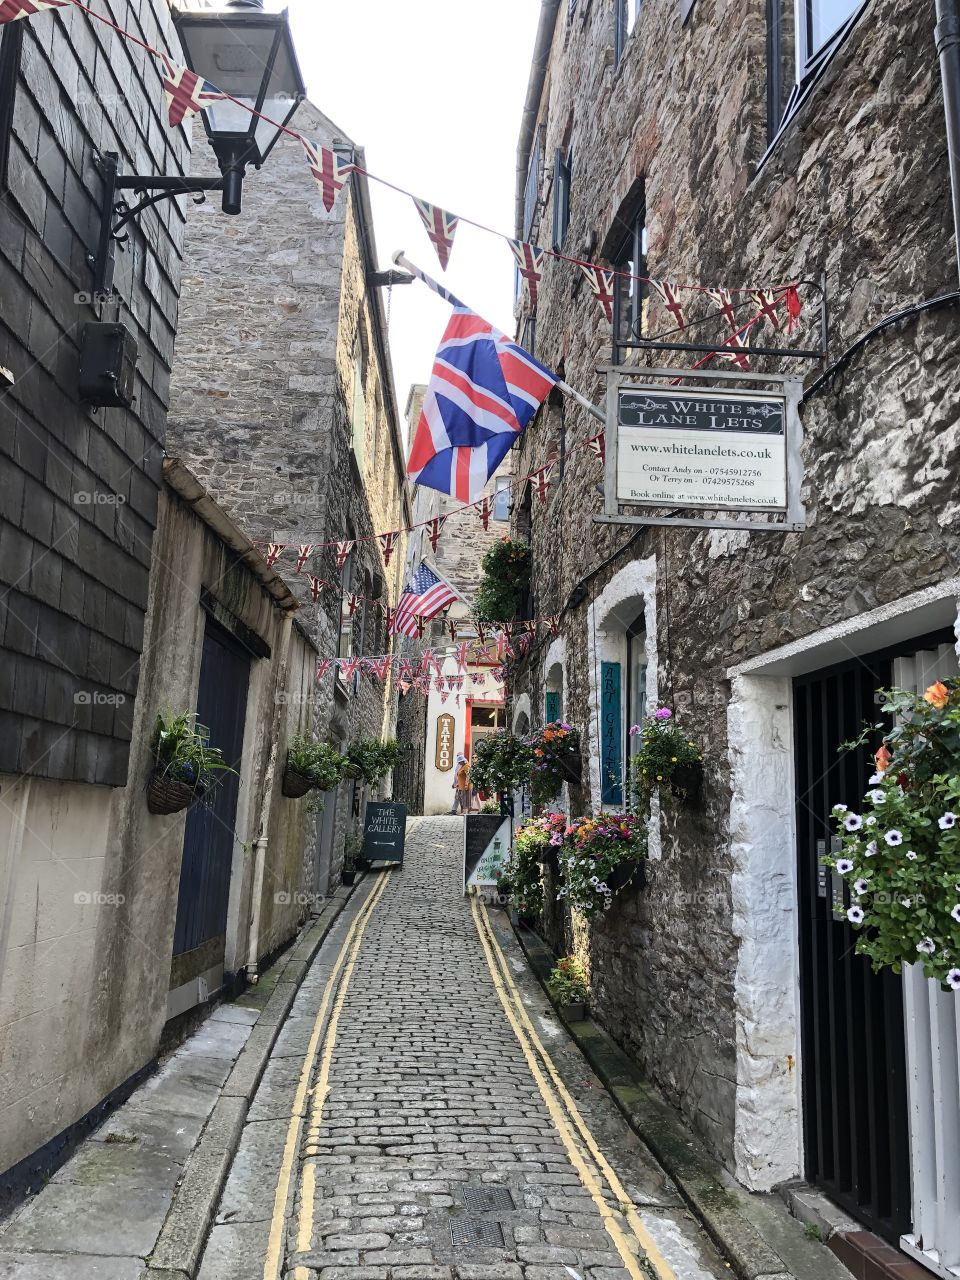 The Barbican in Plymouth has some lovely nooks and crannies,this is one fine example.